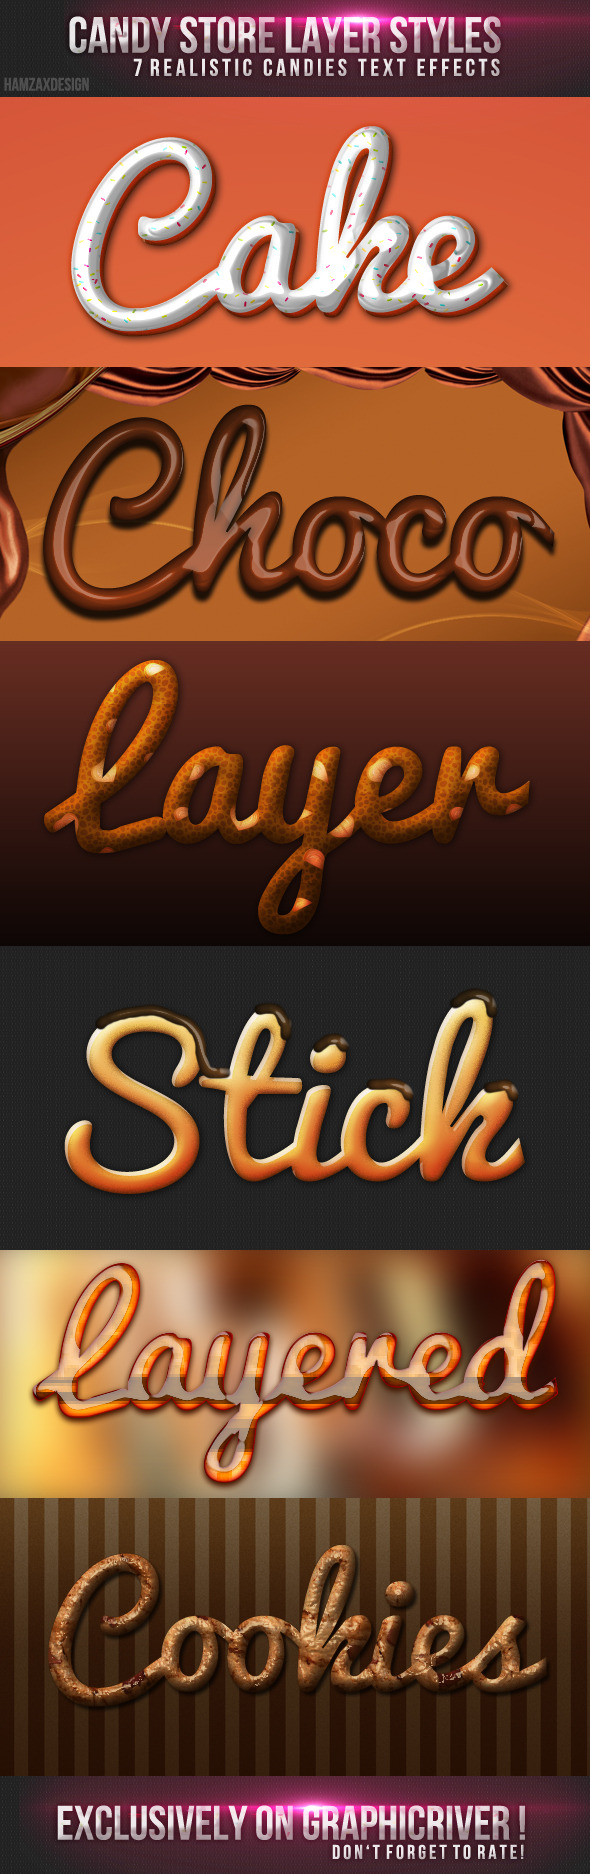 Candy Store Photoshop Styles - Text Effects Styles